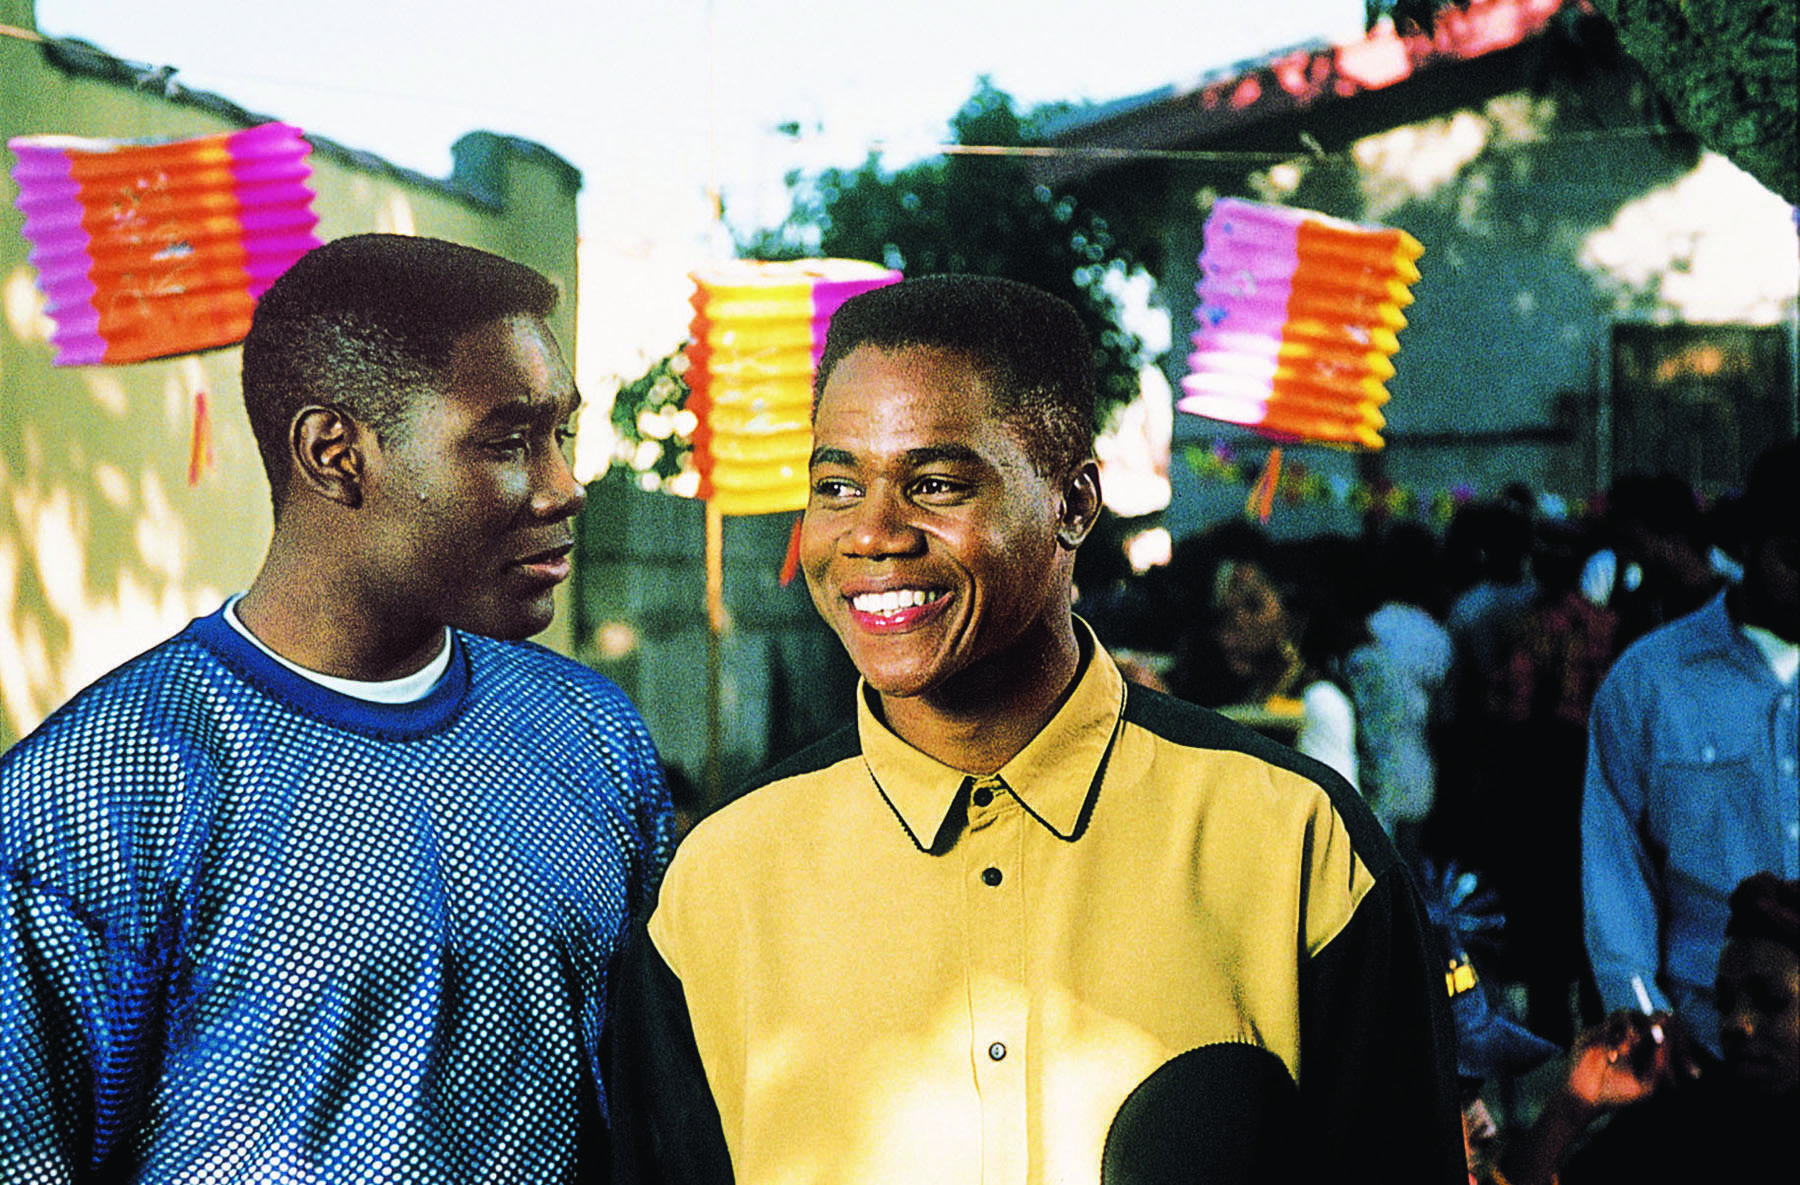 boyz in the hood movie review essay